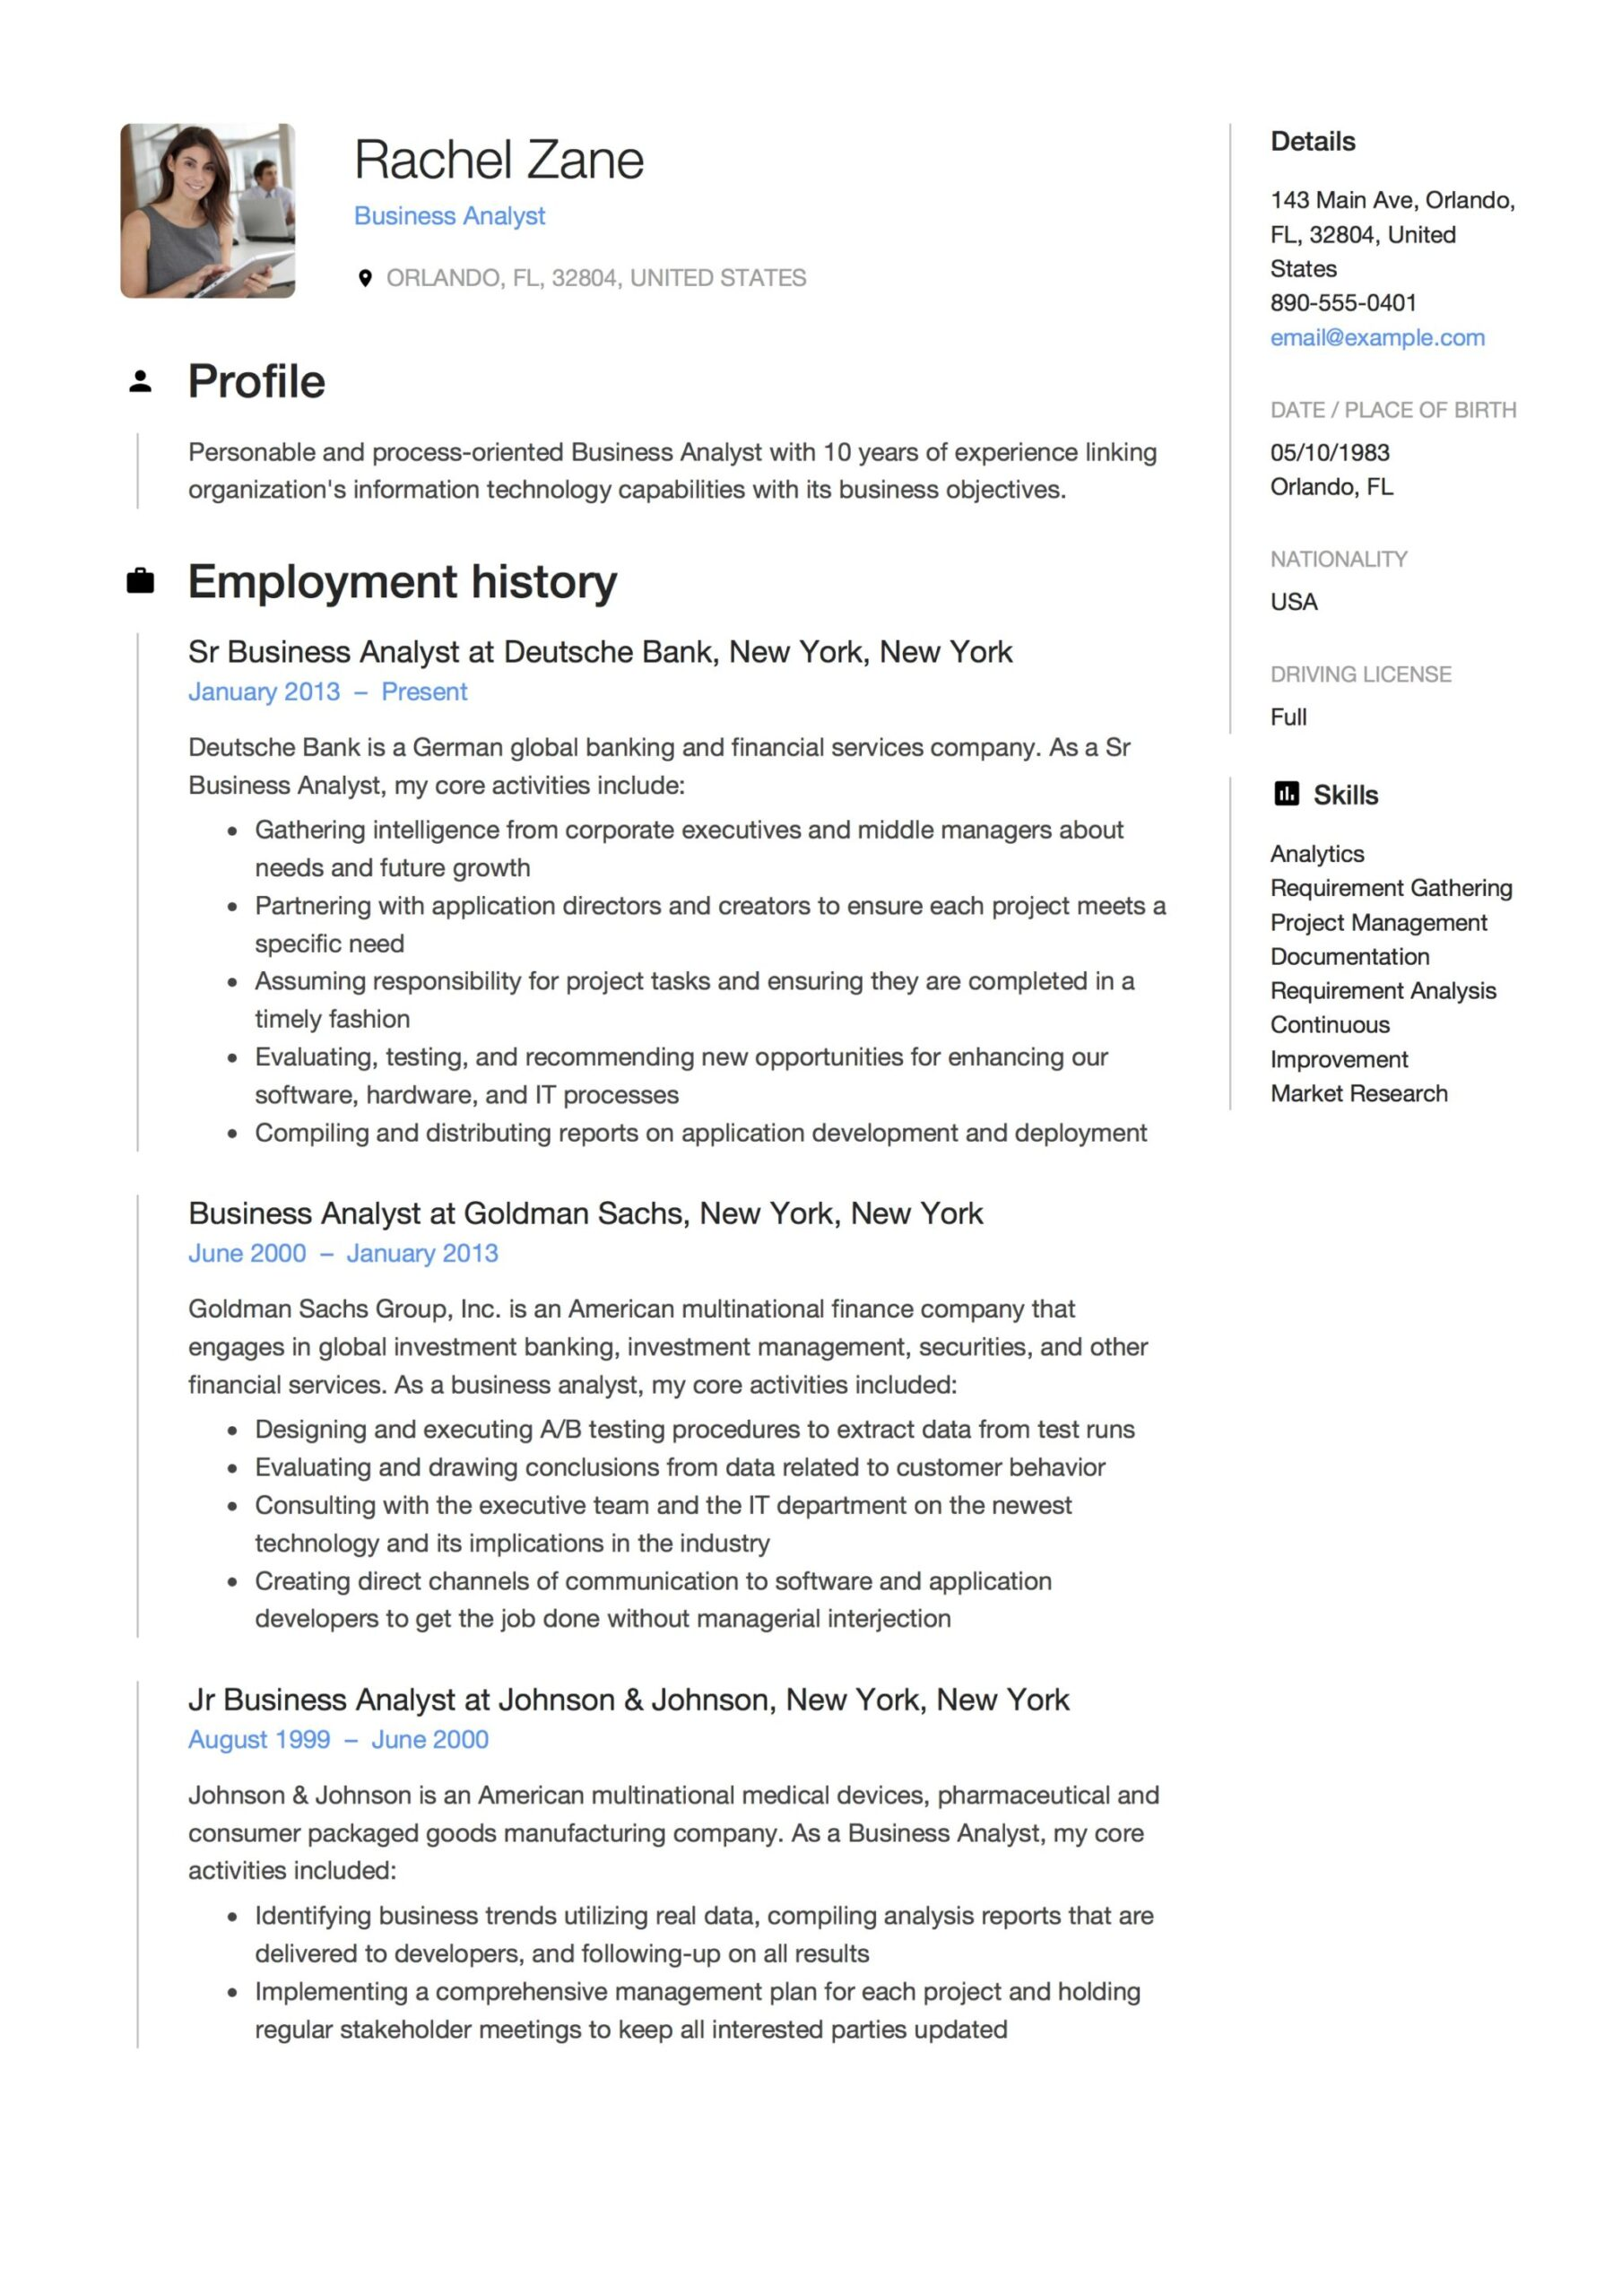 business analyst resume guide templates pdf free downloads simple for job federal big Resume Business Analyst Resume 2020